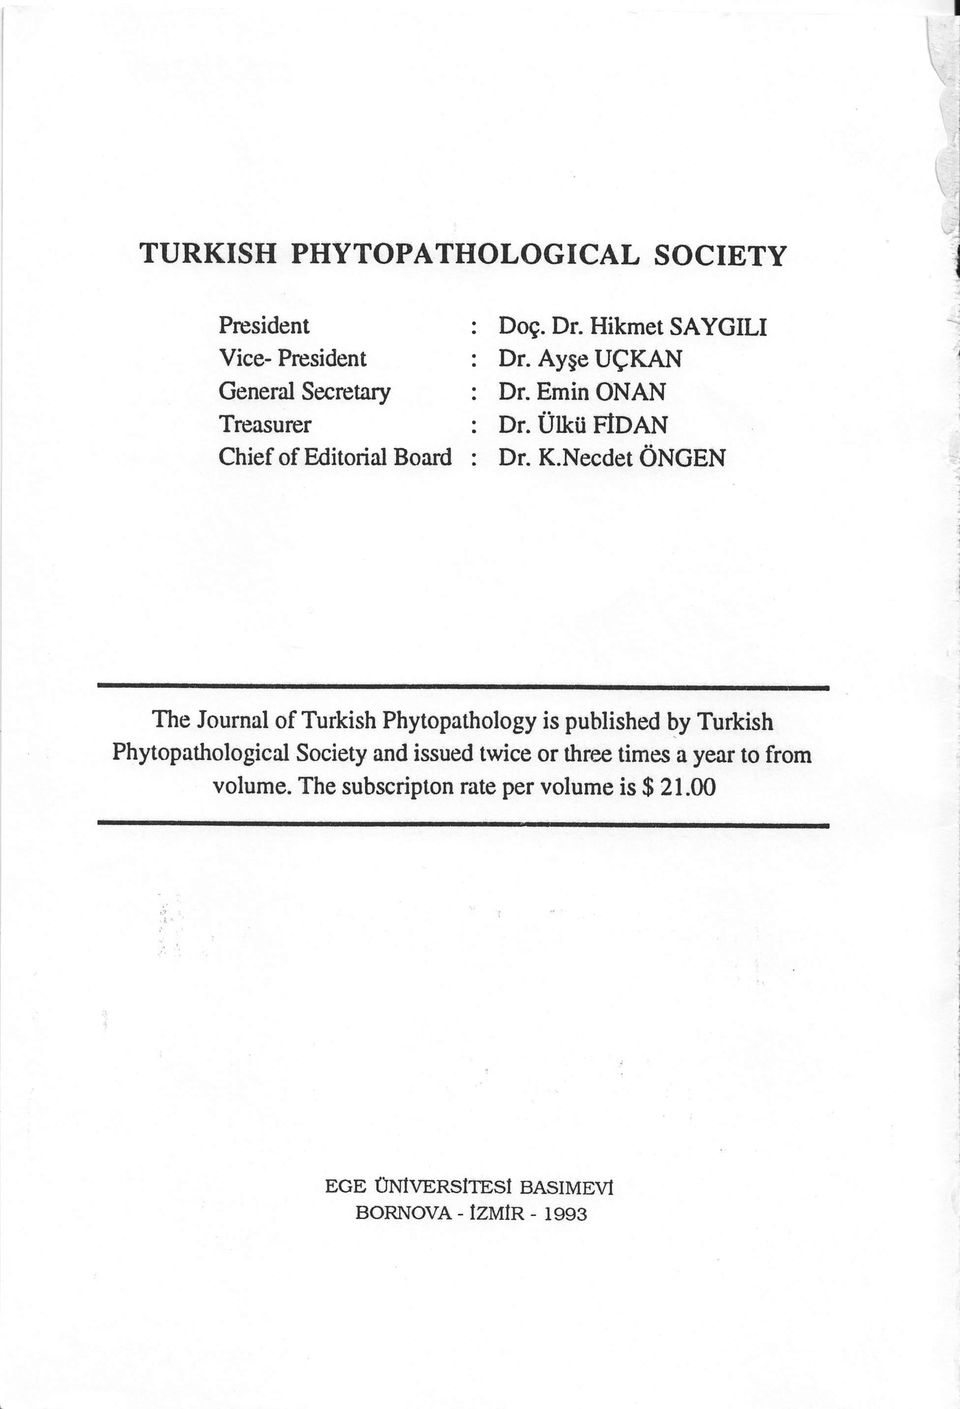 Necder ONGEN The furnal f Turkish Phytpathlgy is published by Turkish Phytpathlgical Sciety and issued